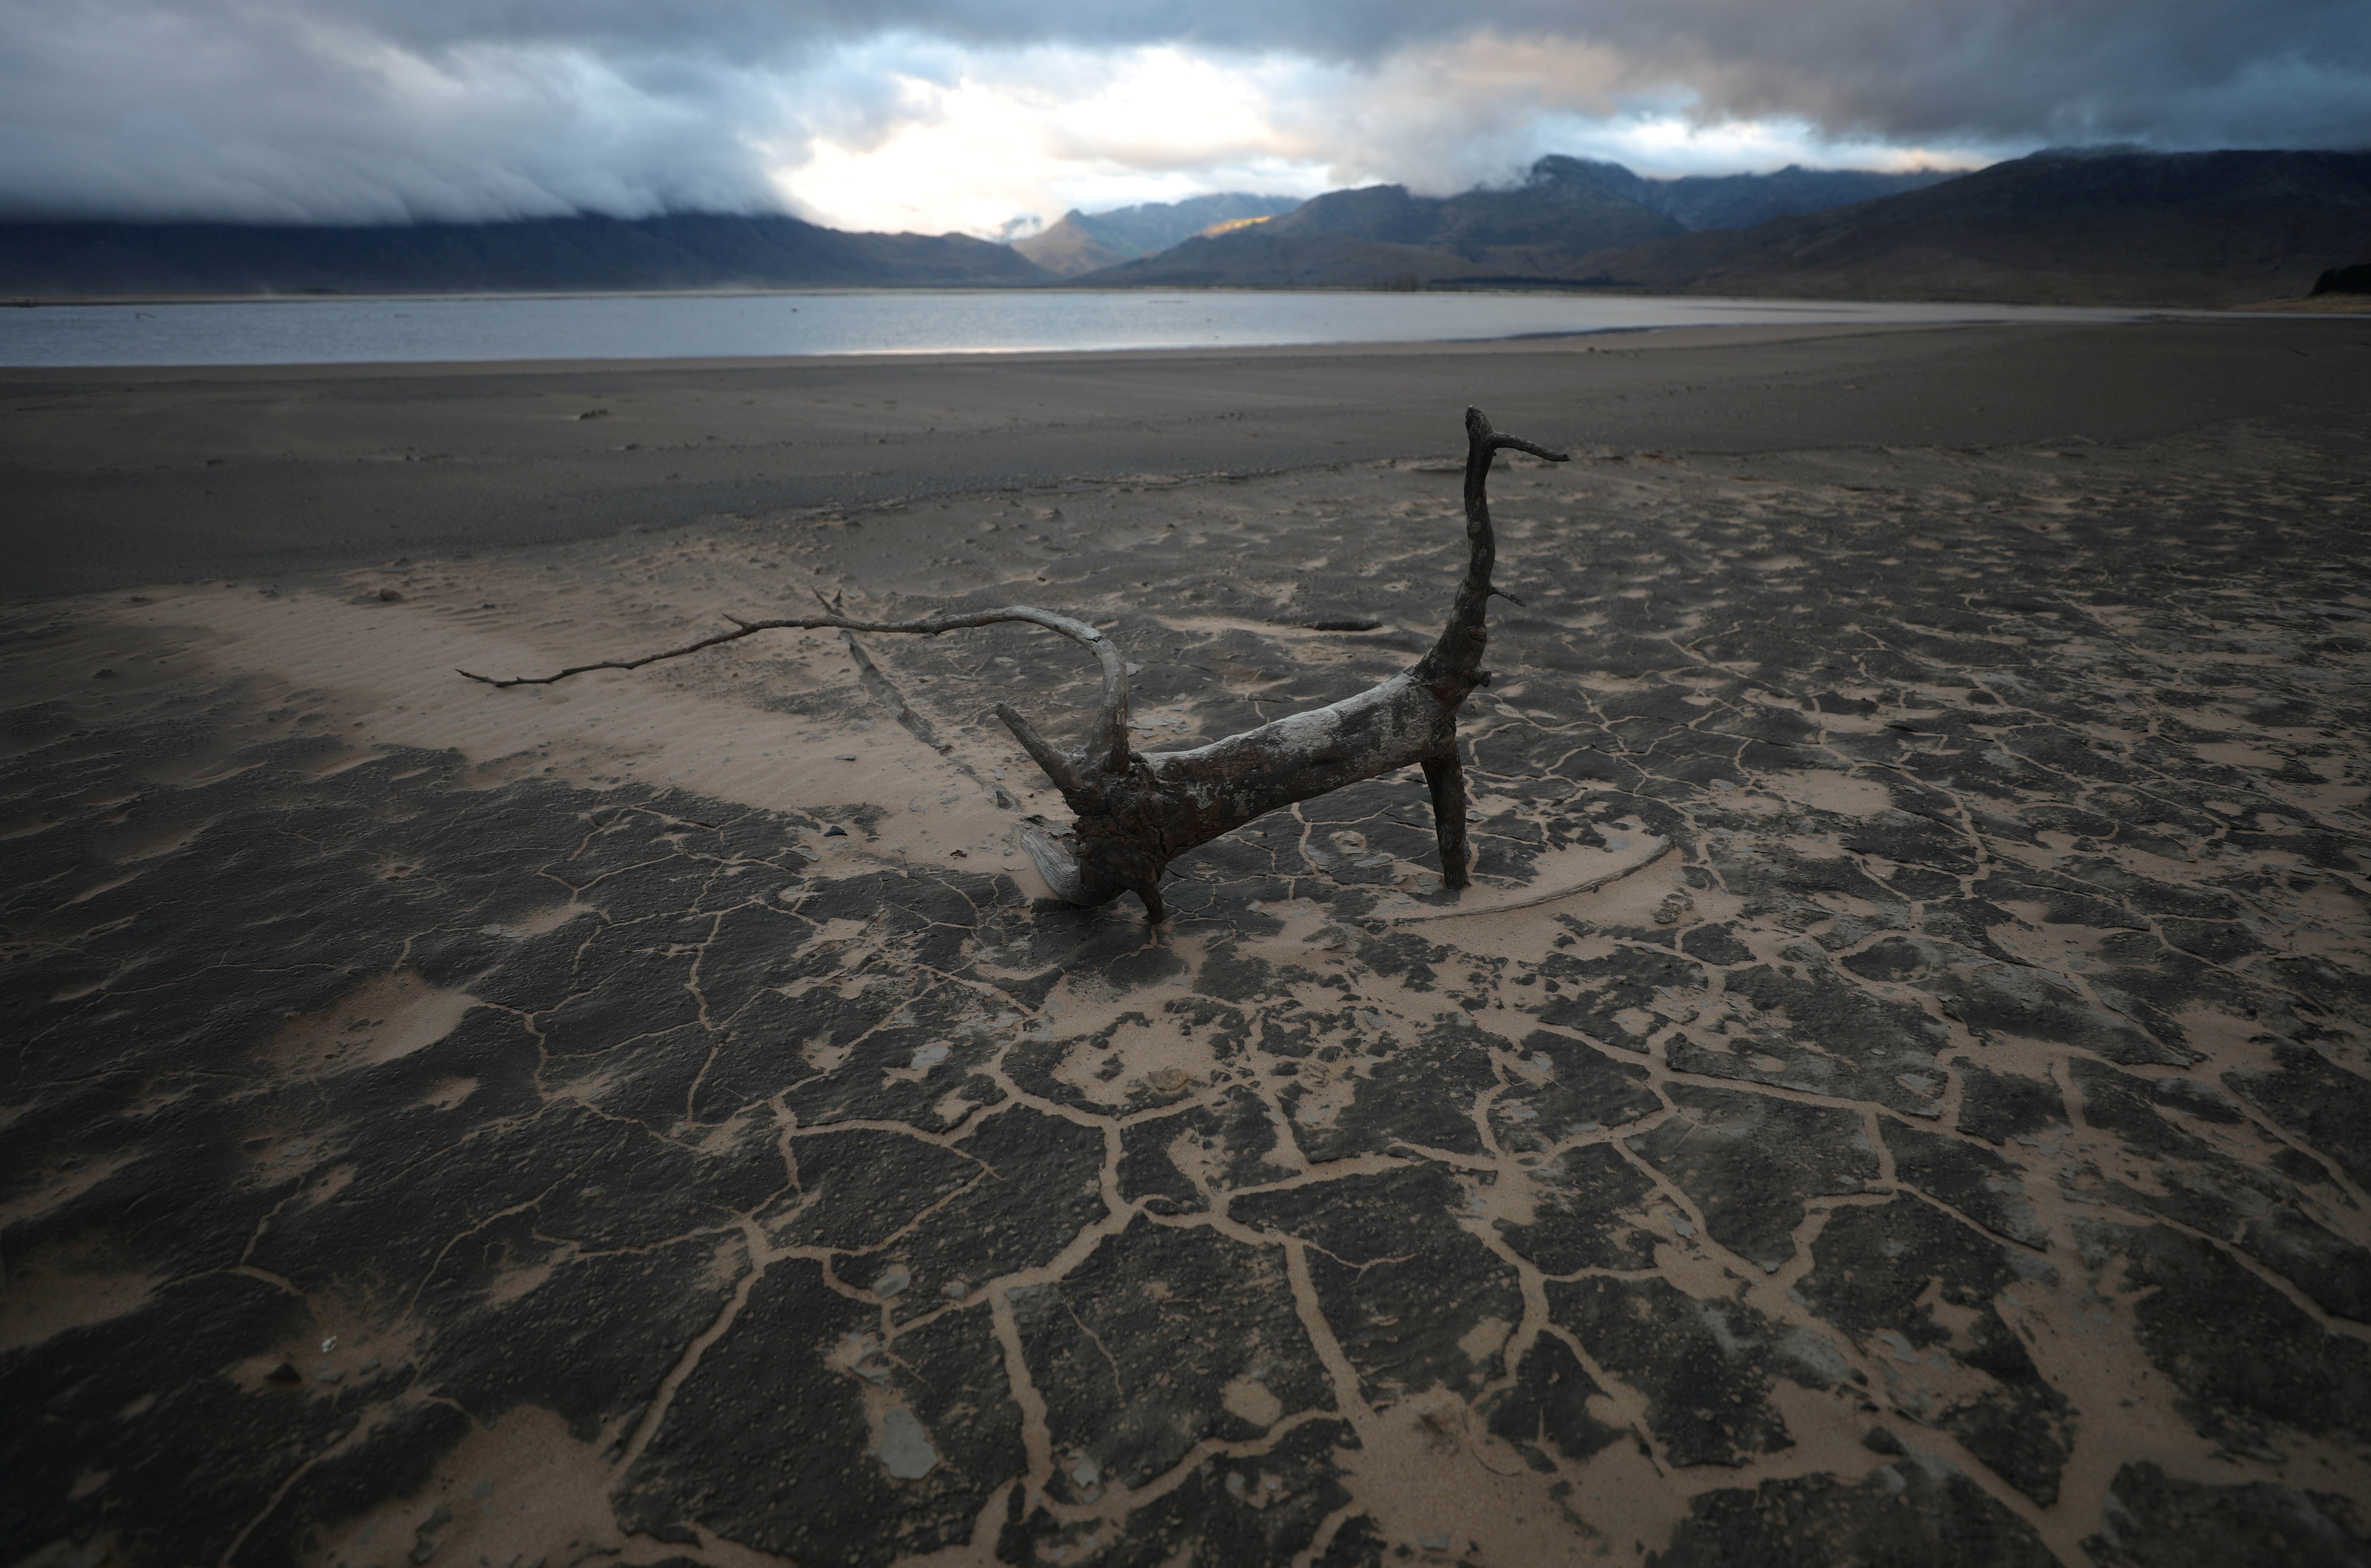 Sand blows across a normally submerged area at Theewaterskloof dam near Cape Town, South Africa, January 20, 2018.  REUTERS/Mike Hutchings/File Photo